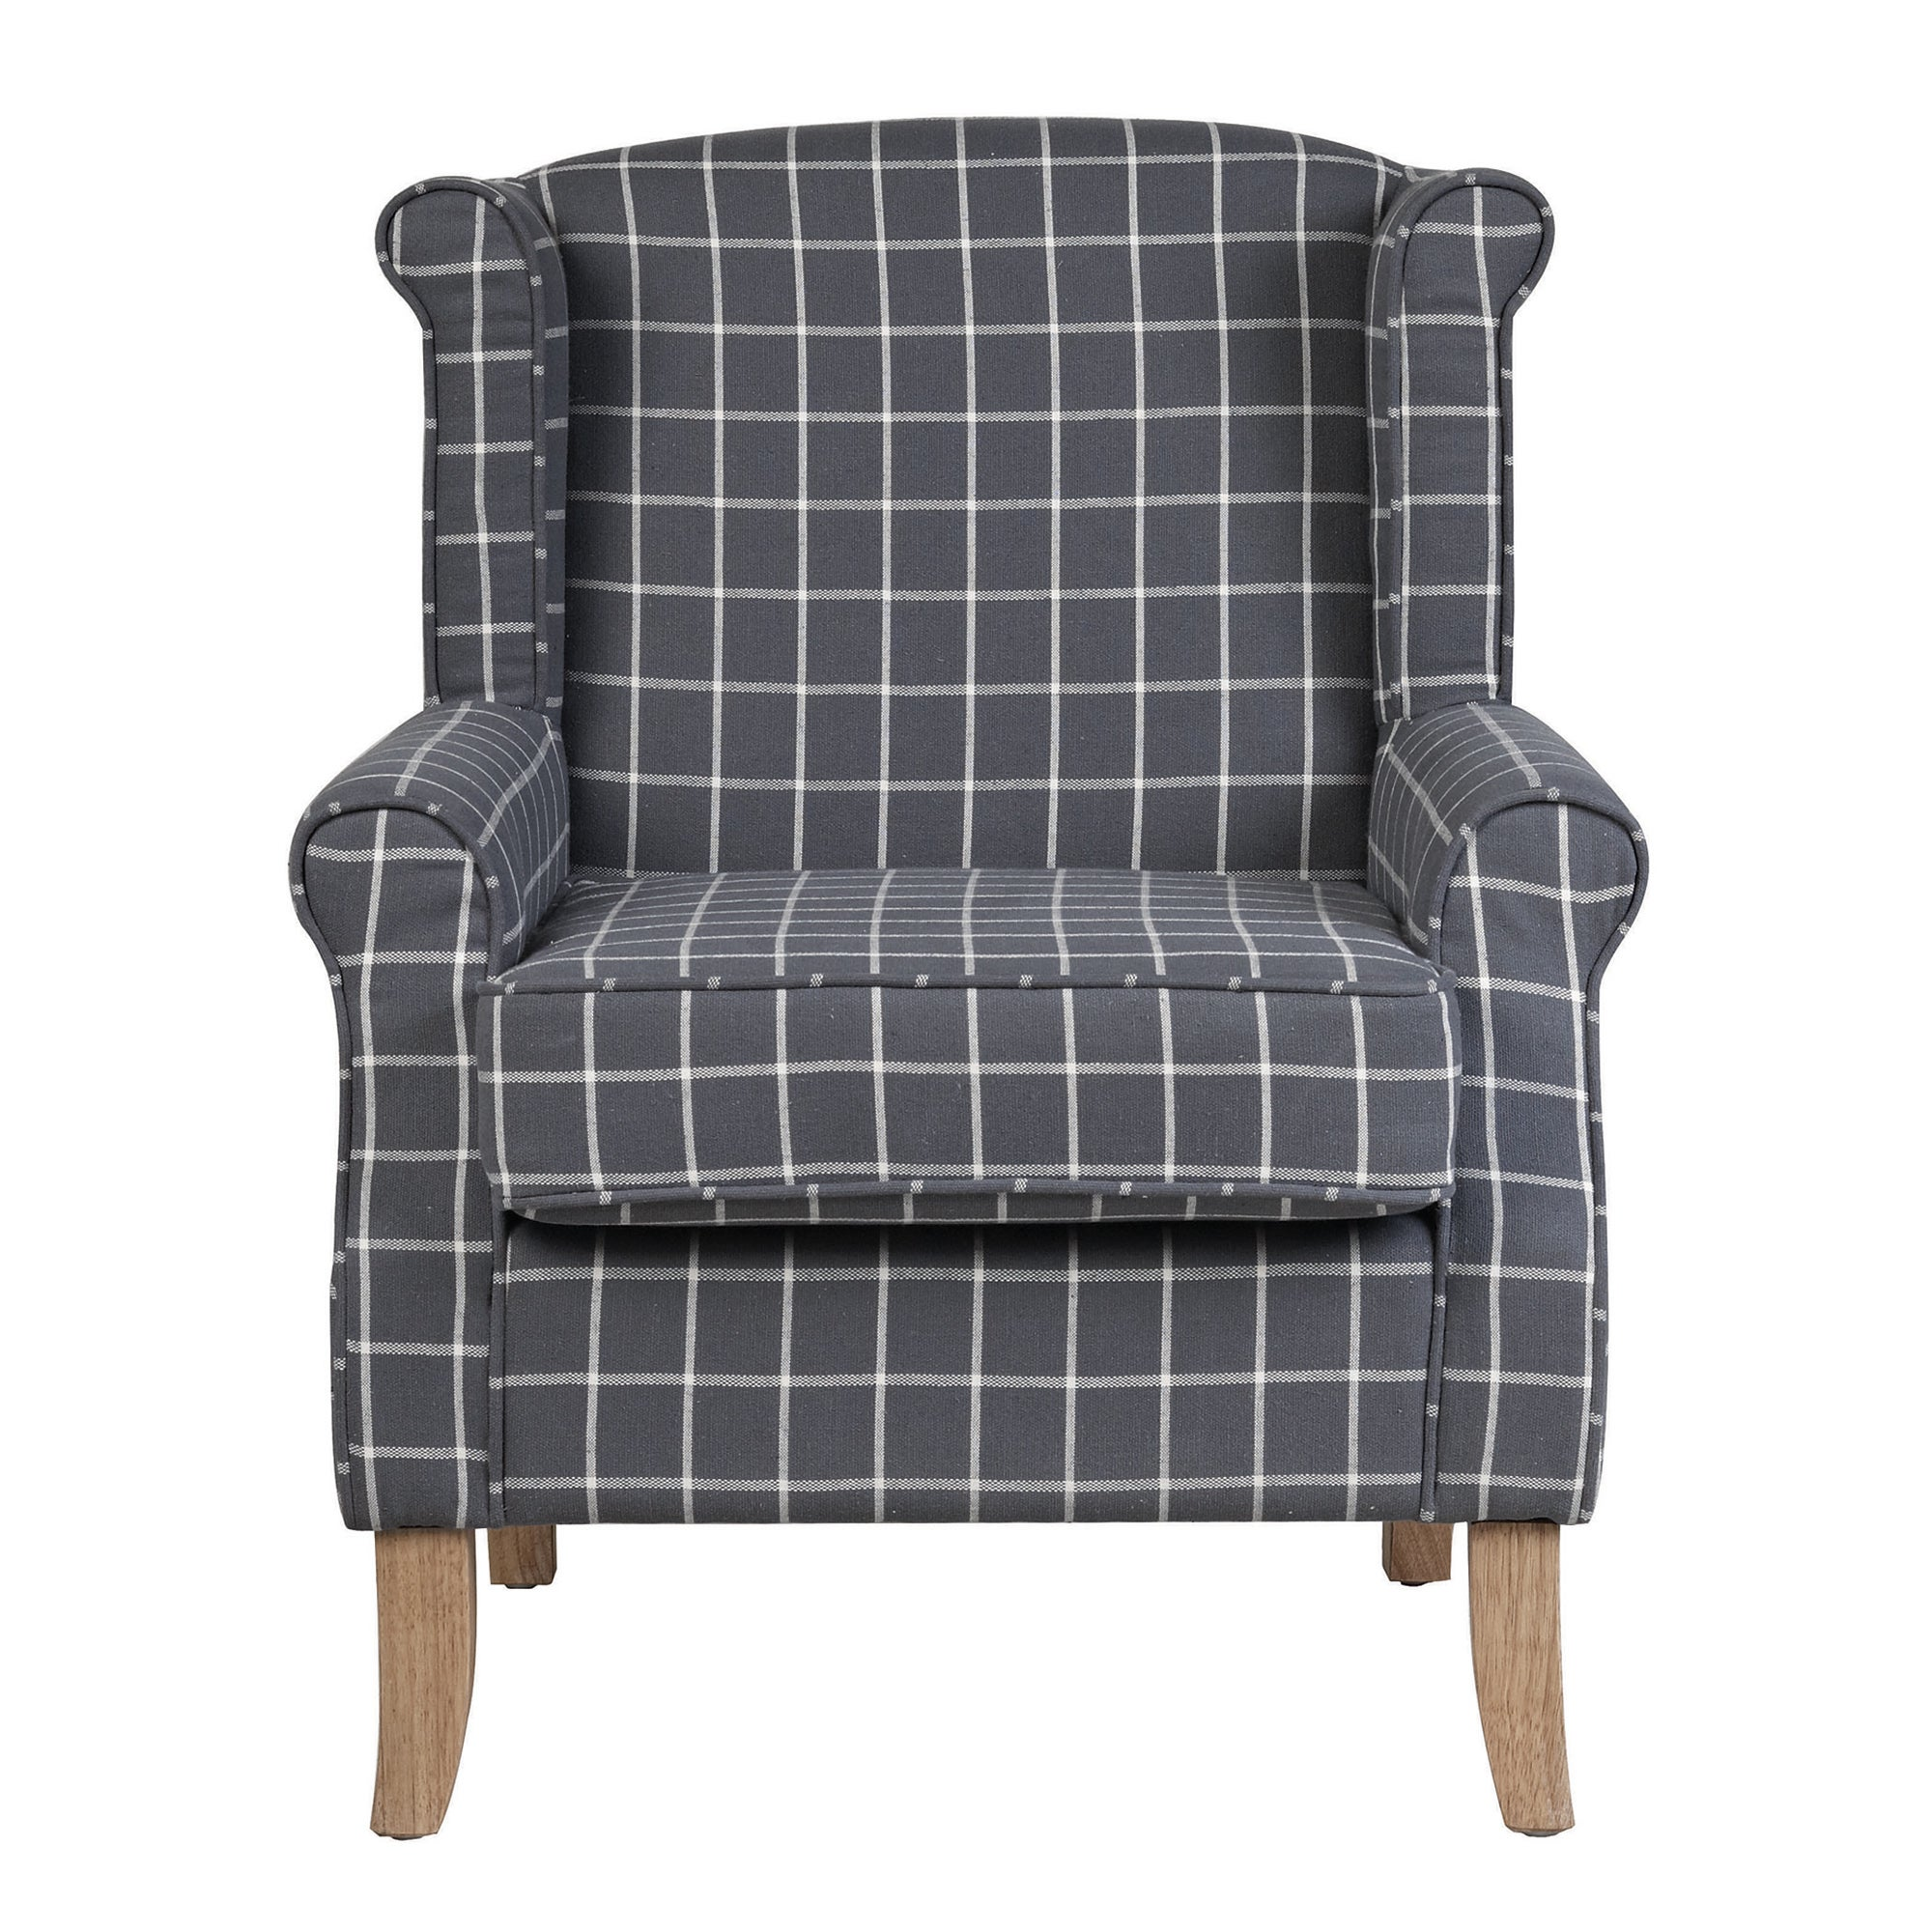 Charcoal Check Edinburgh Armchair